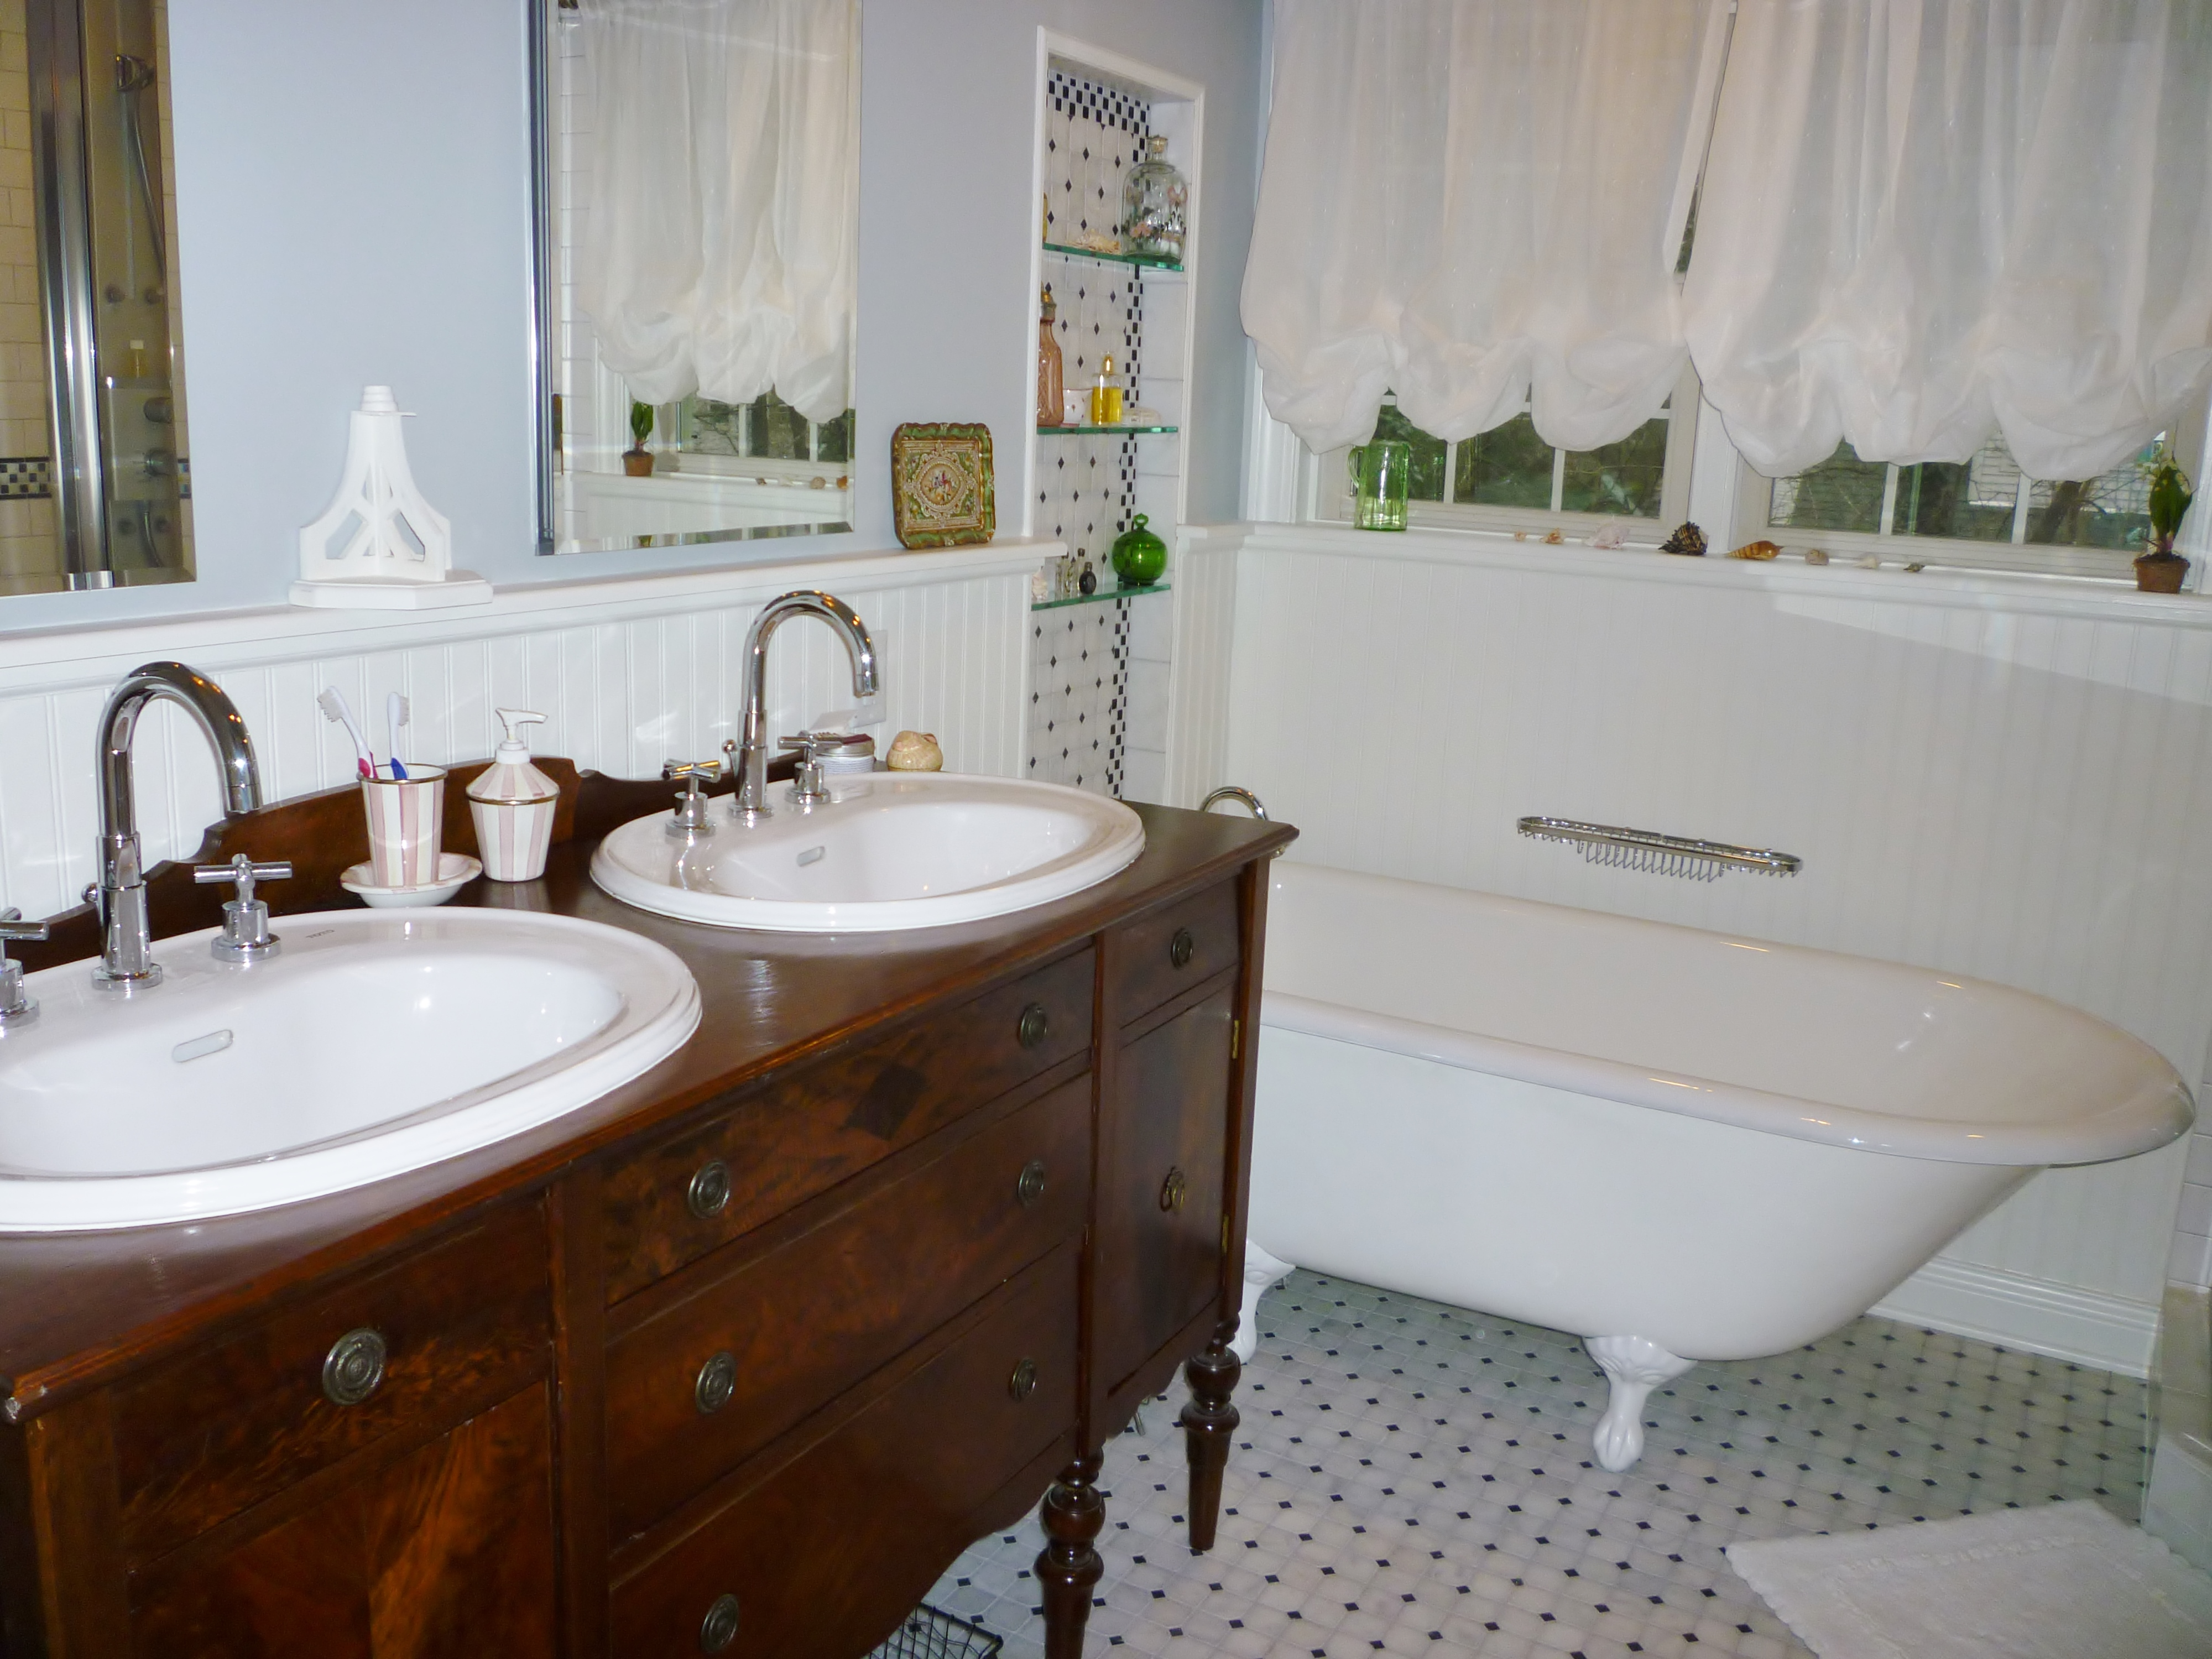 Bath Remodels Kirkwood Home Landscape Julies Garden Design - How much is a full bathroom remodel